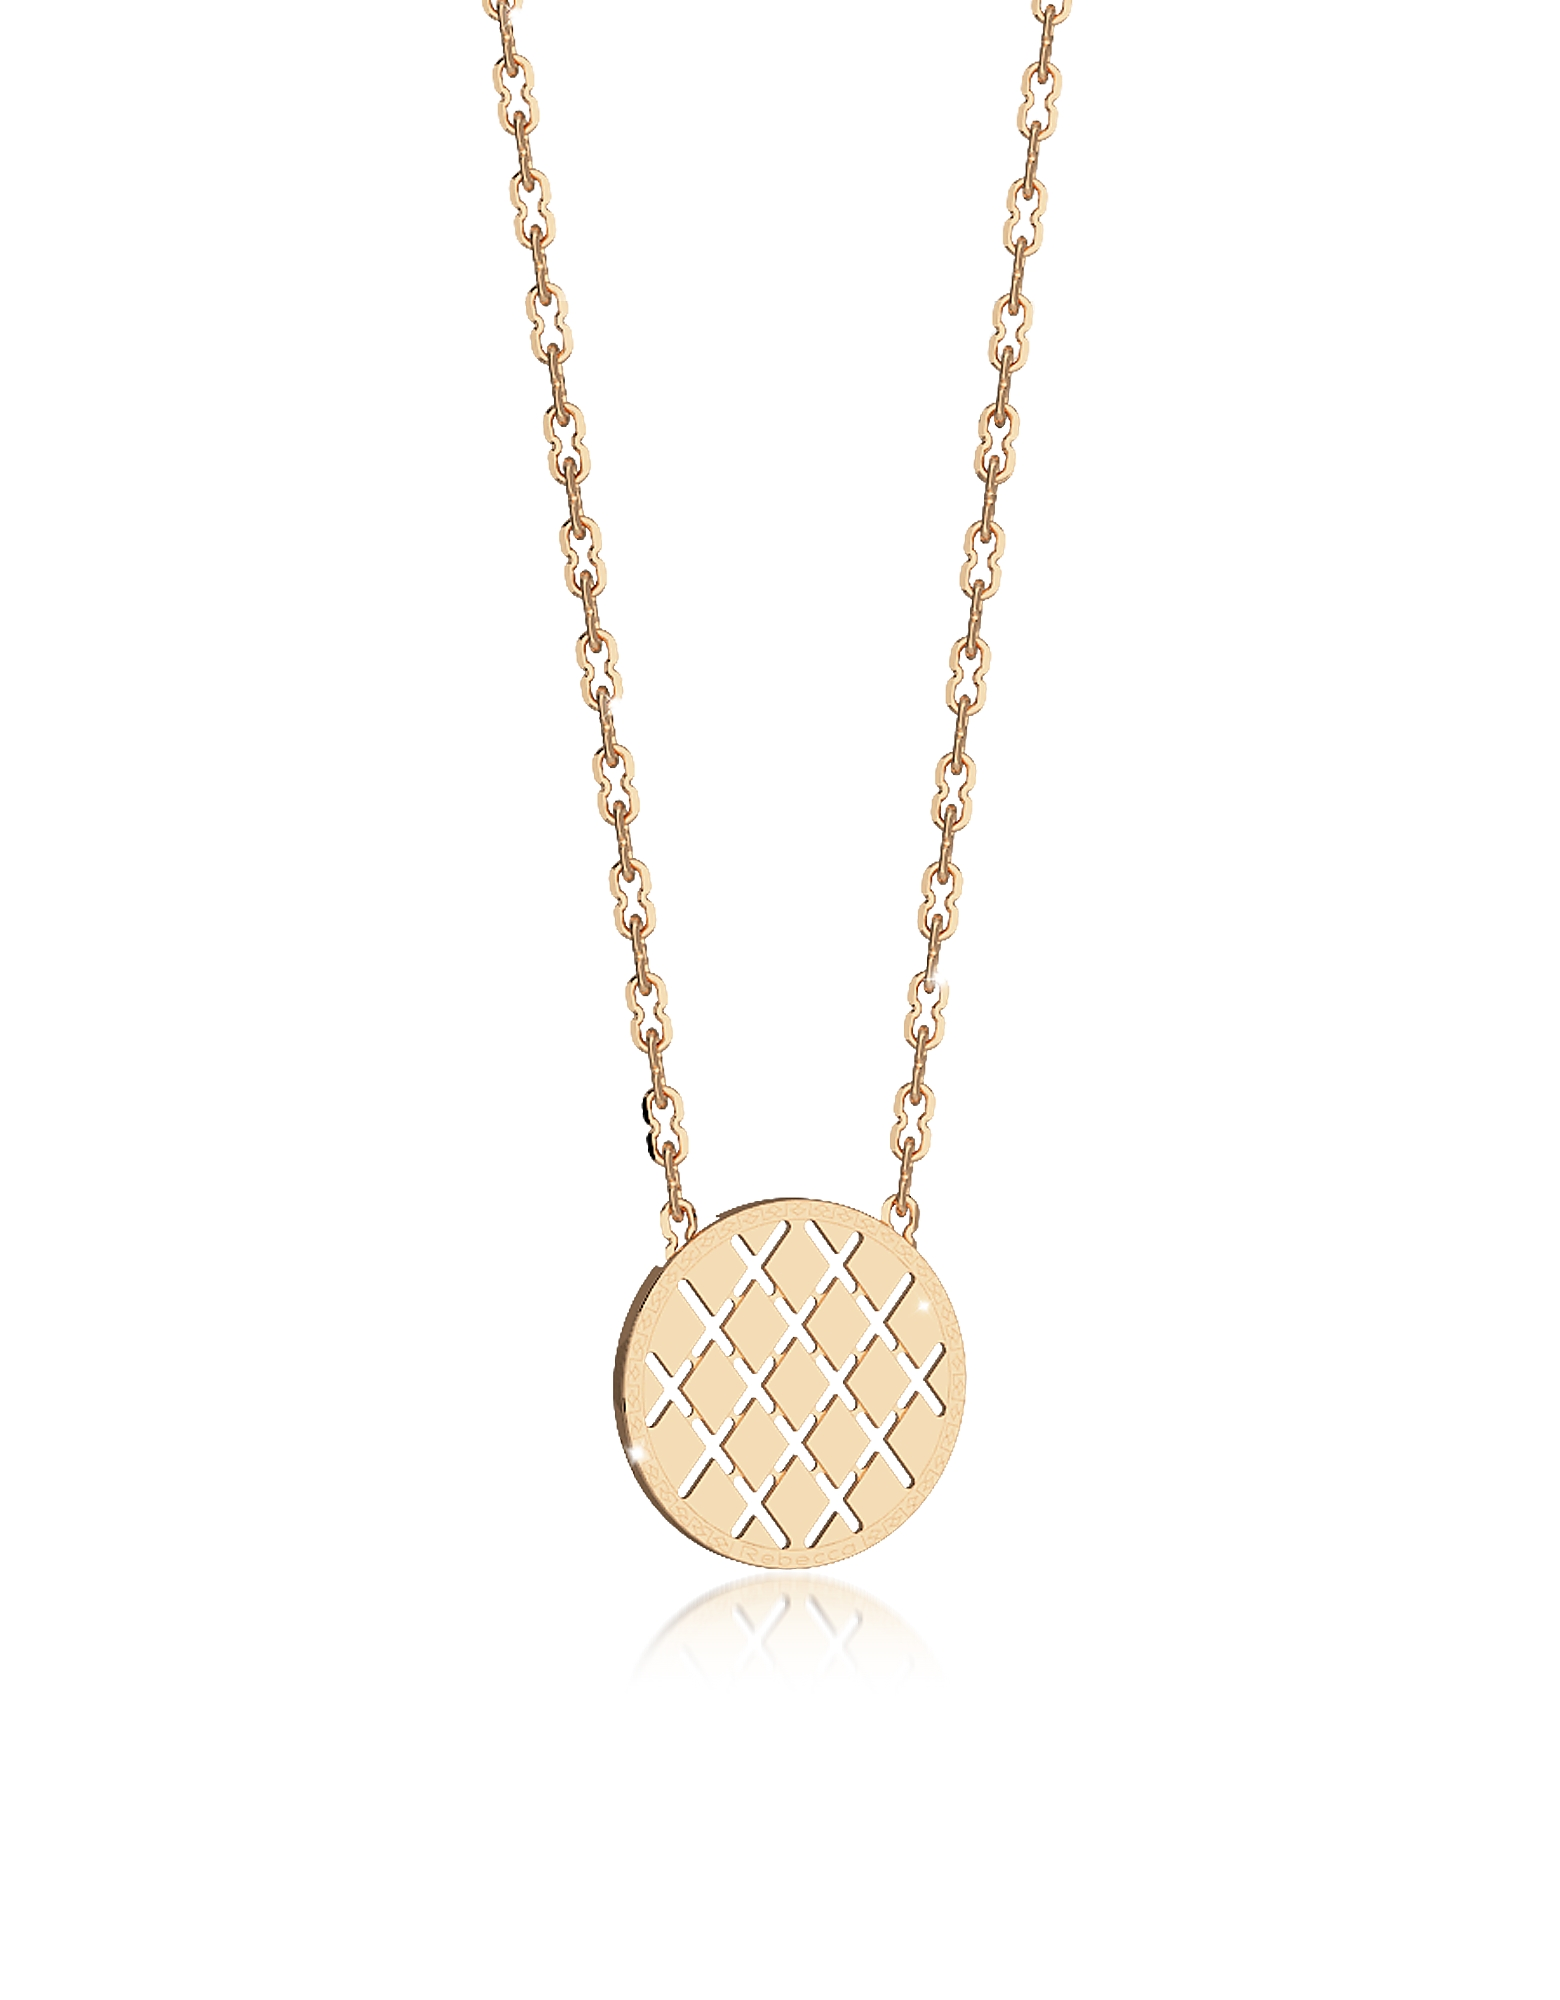 Rebecca Necklaces, Melrose Yellow Gold Over Bronze Necklace w/Round Charm